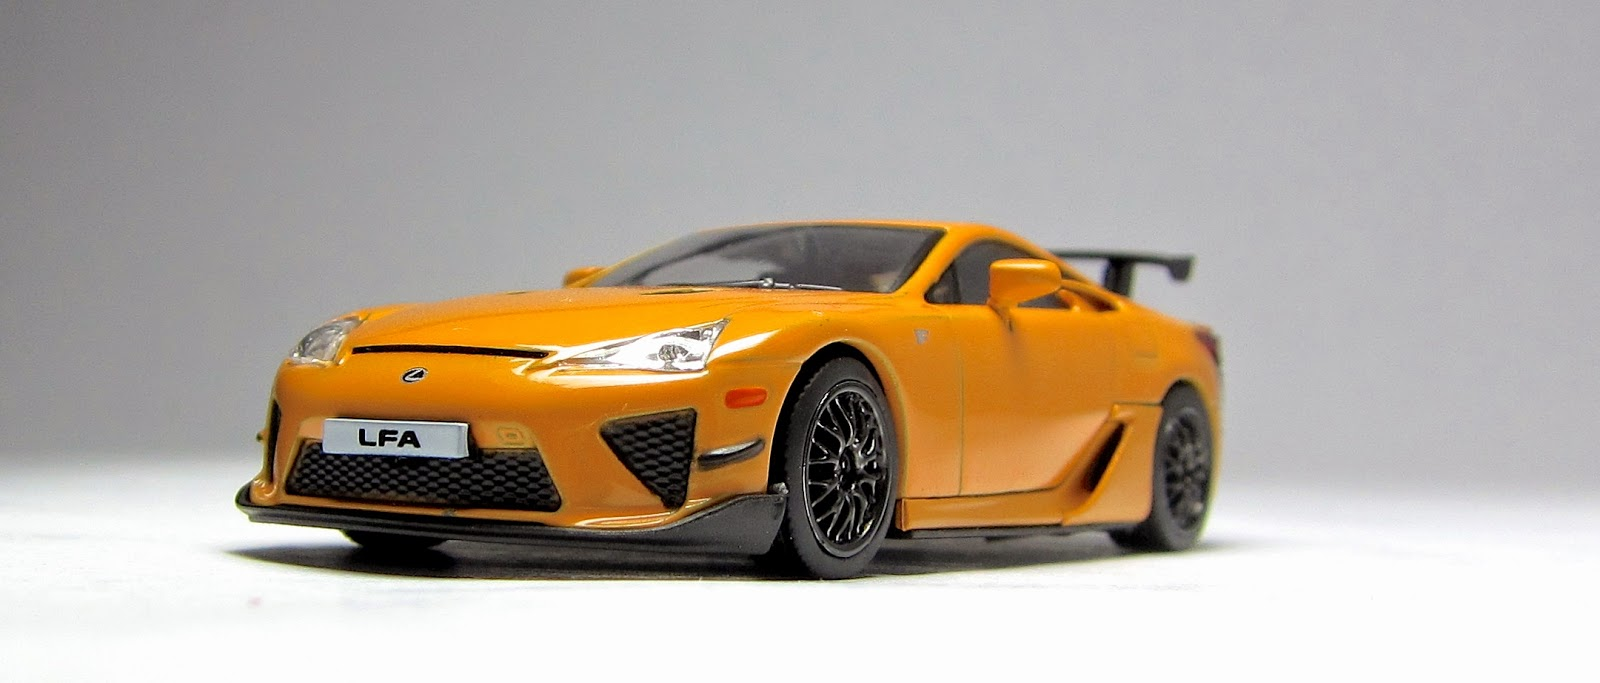 cool is cool is cool the kyosho lexus lfa nurburgring. Black Bedroom Furniture Sets. Home Design Ideas